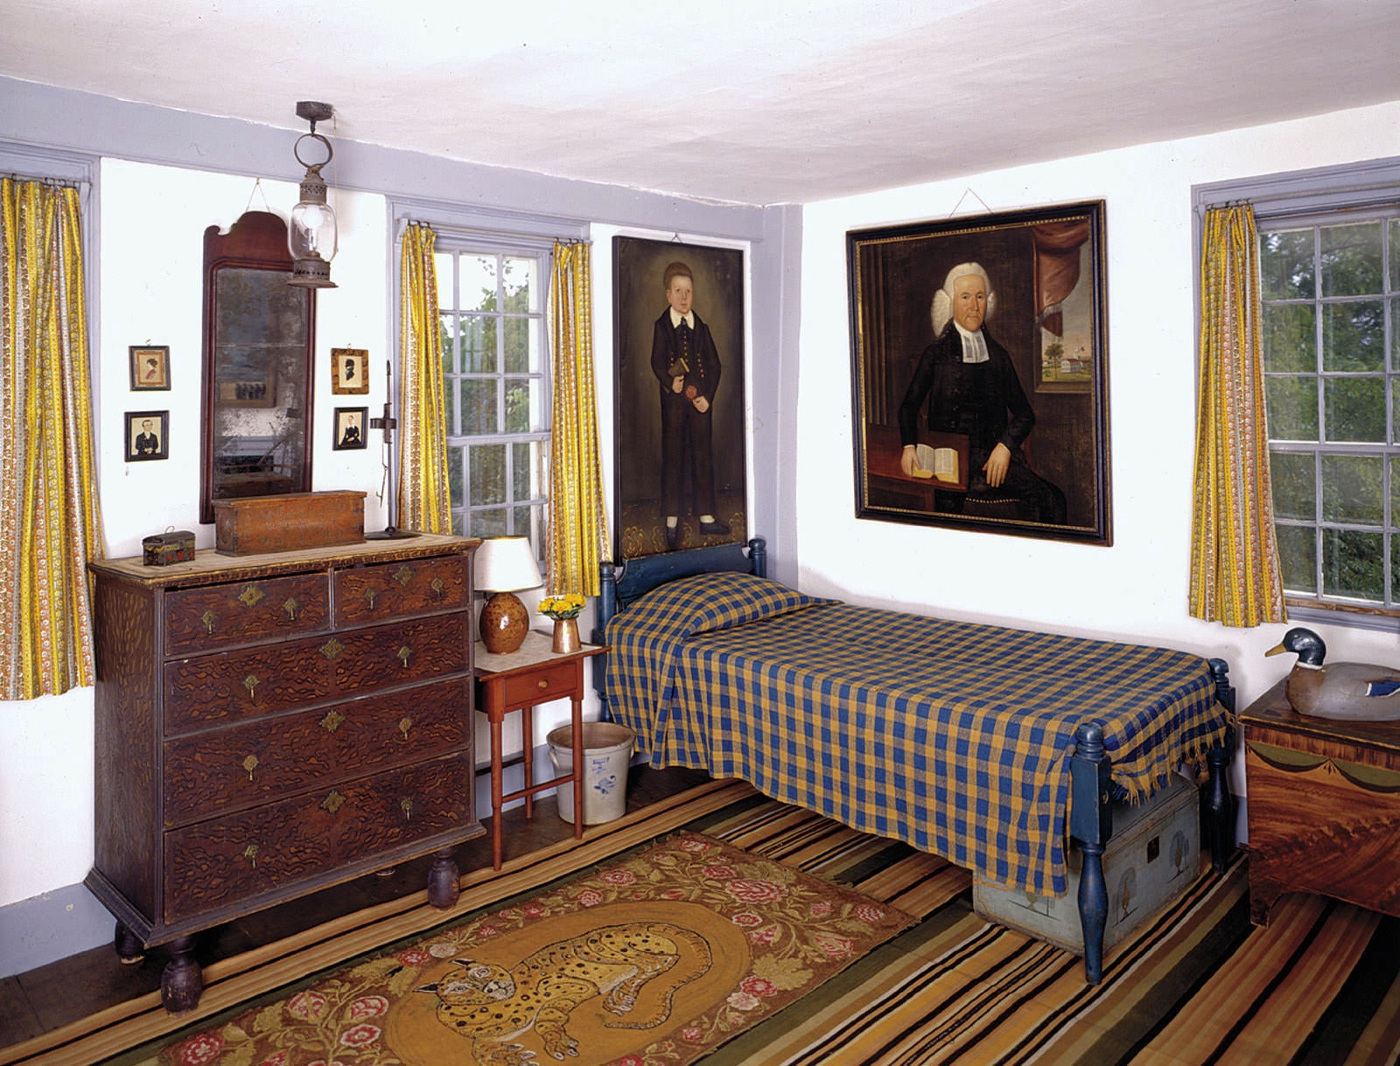 Cogswell 39 s grant an historic new england property offers for New home decoration items